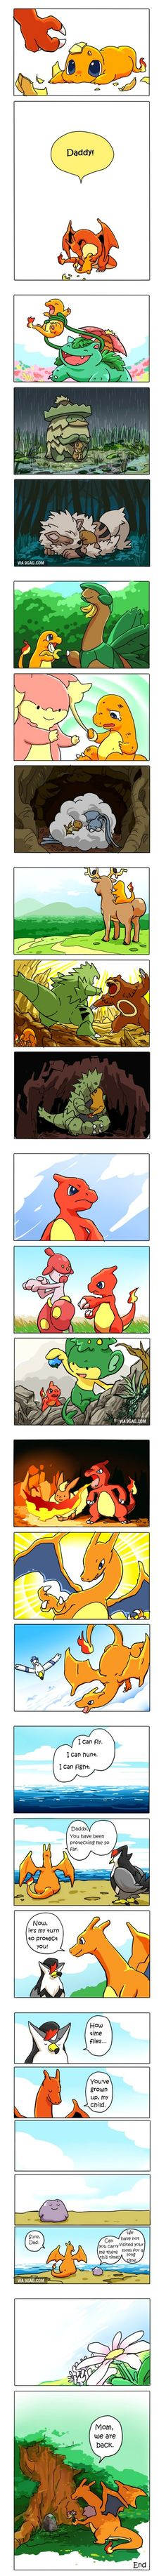 I've never played Pokemon, but this is adorable. A ditto fathered a charmander and used different Pokemon forms to raise it. Pokemon Mew, Pokemon Comics, Charmander, Charizard, Pokemon Stuff, Pokemon Mignon, Pokemon Pictures, Catch Em All, Geek Out